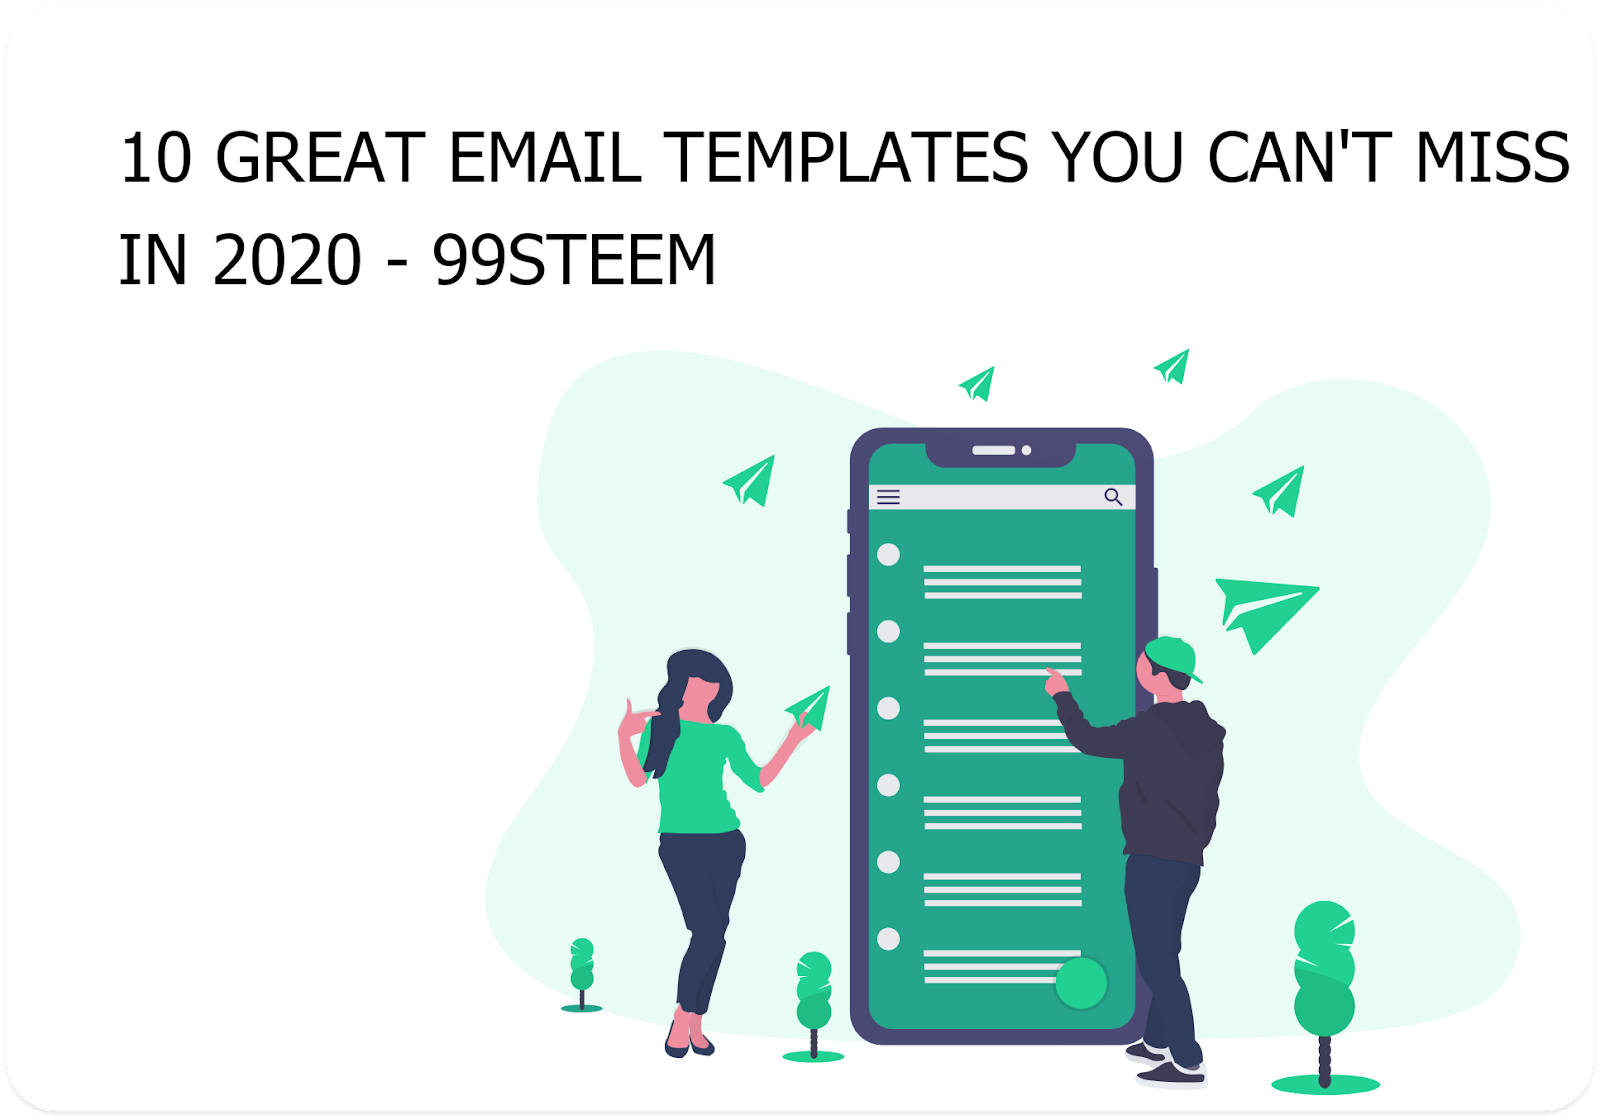 10 Great Email Templates You can't miss in 2020 - 99steem